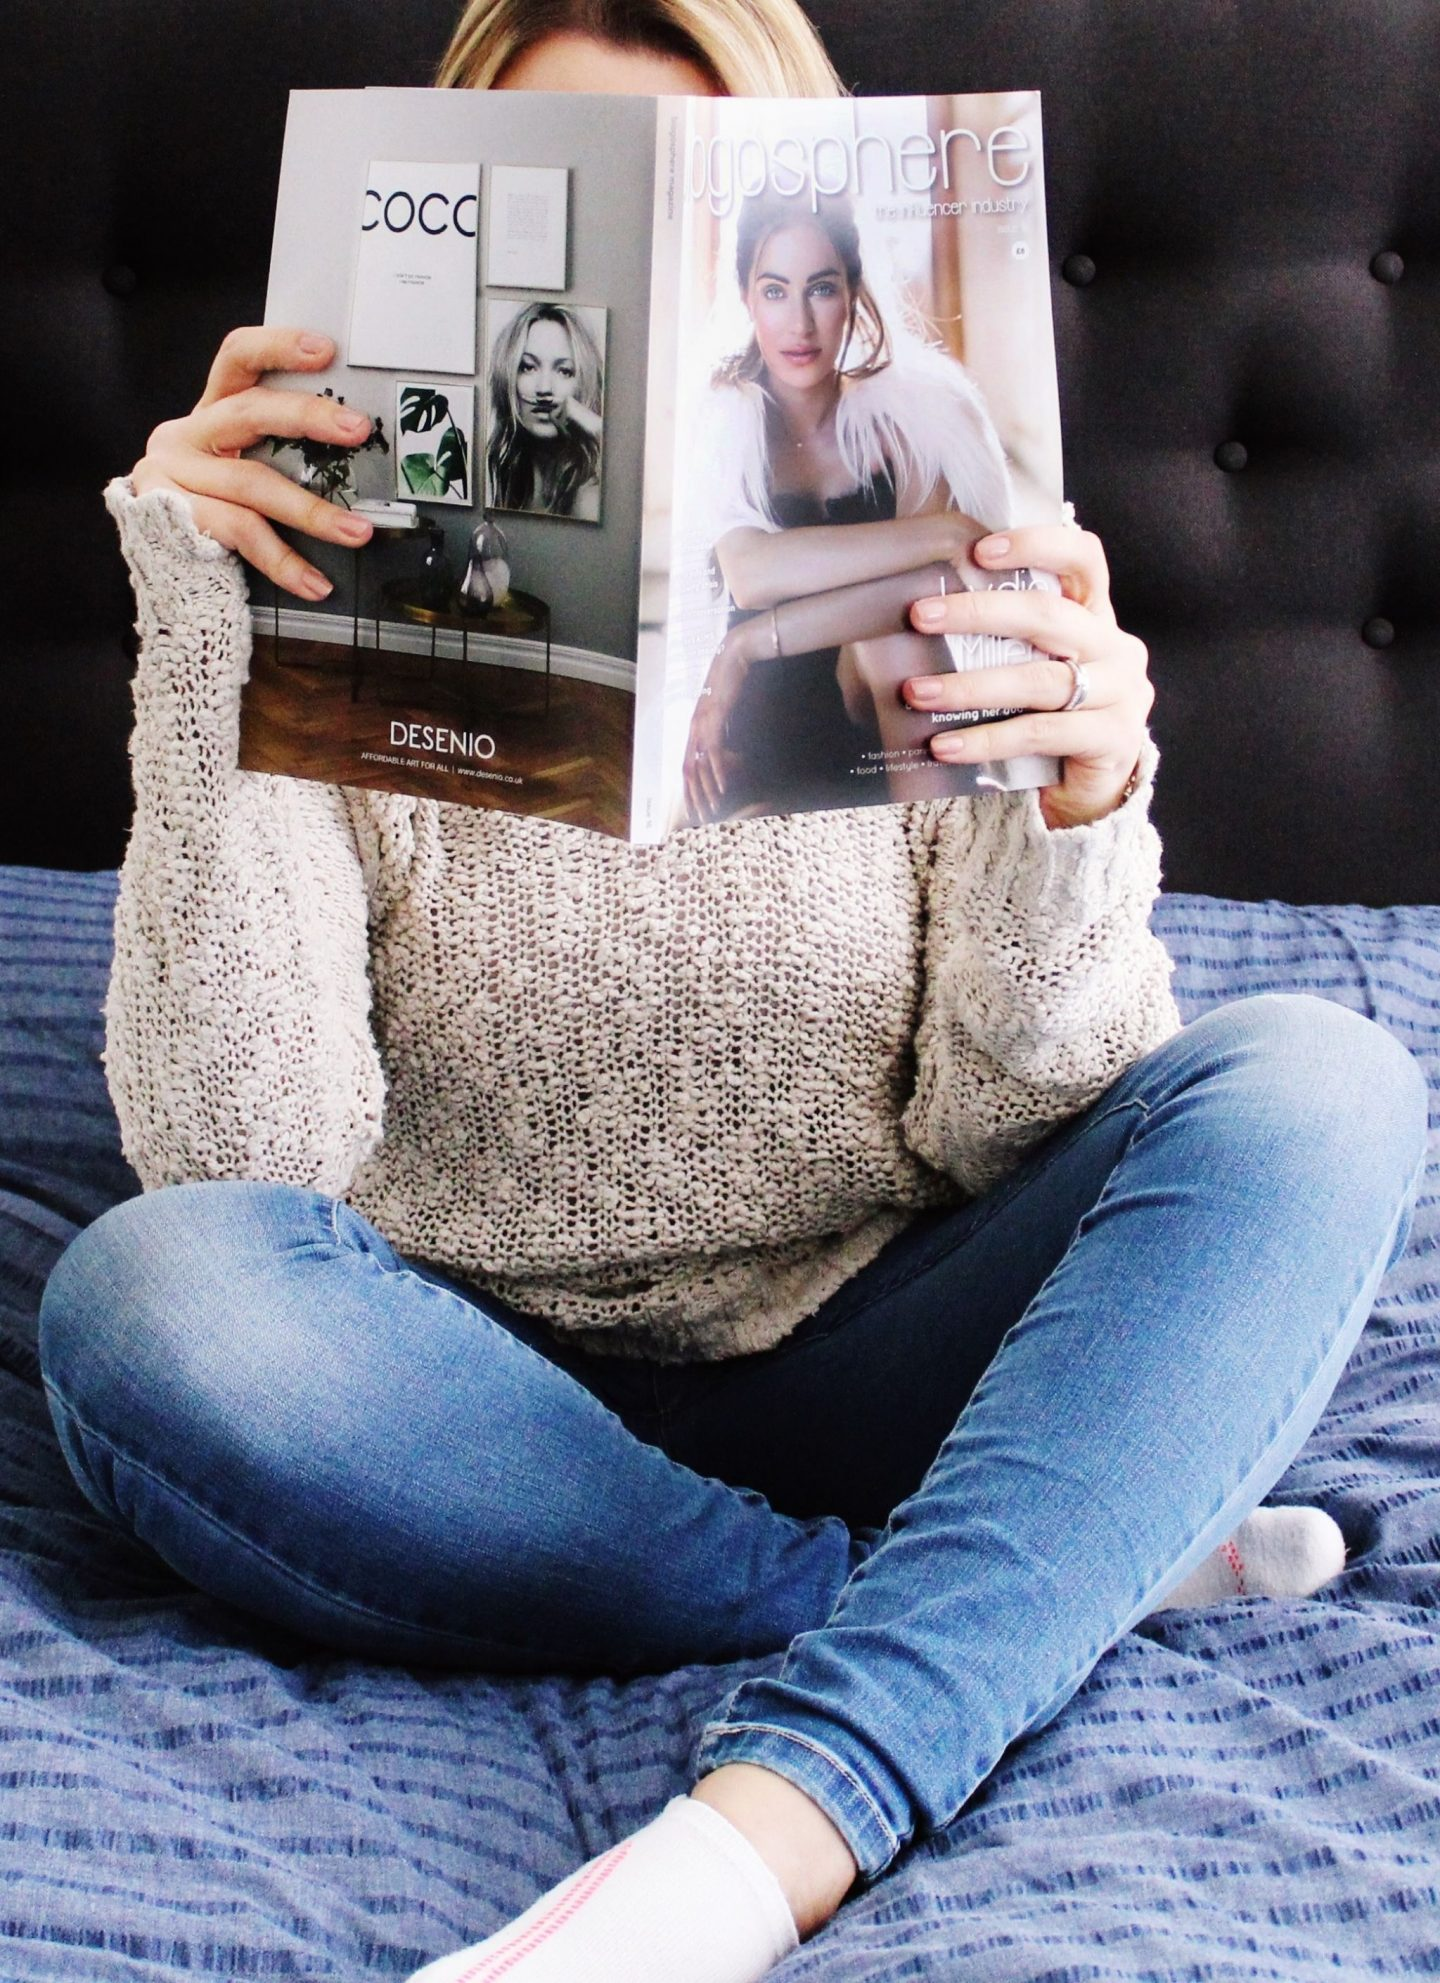 Blogosphere Magazine - Advice for new bloggers - Miel and Mint blog